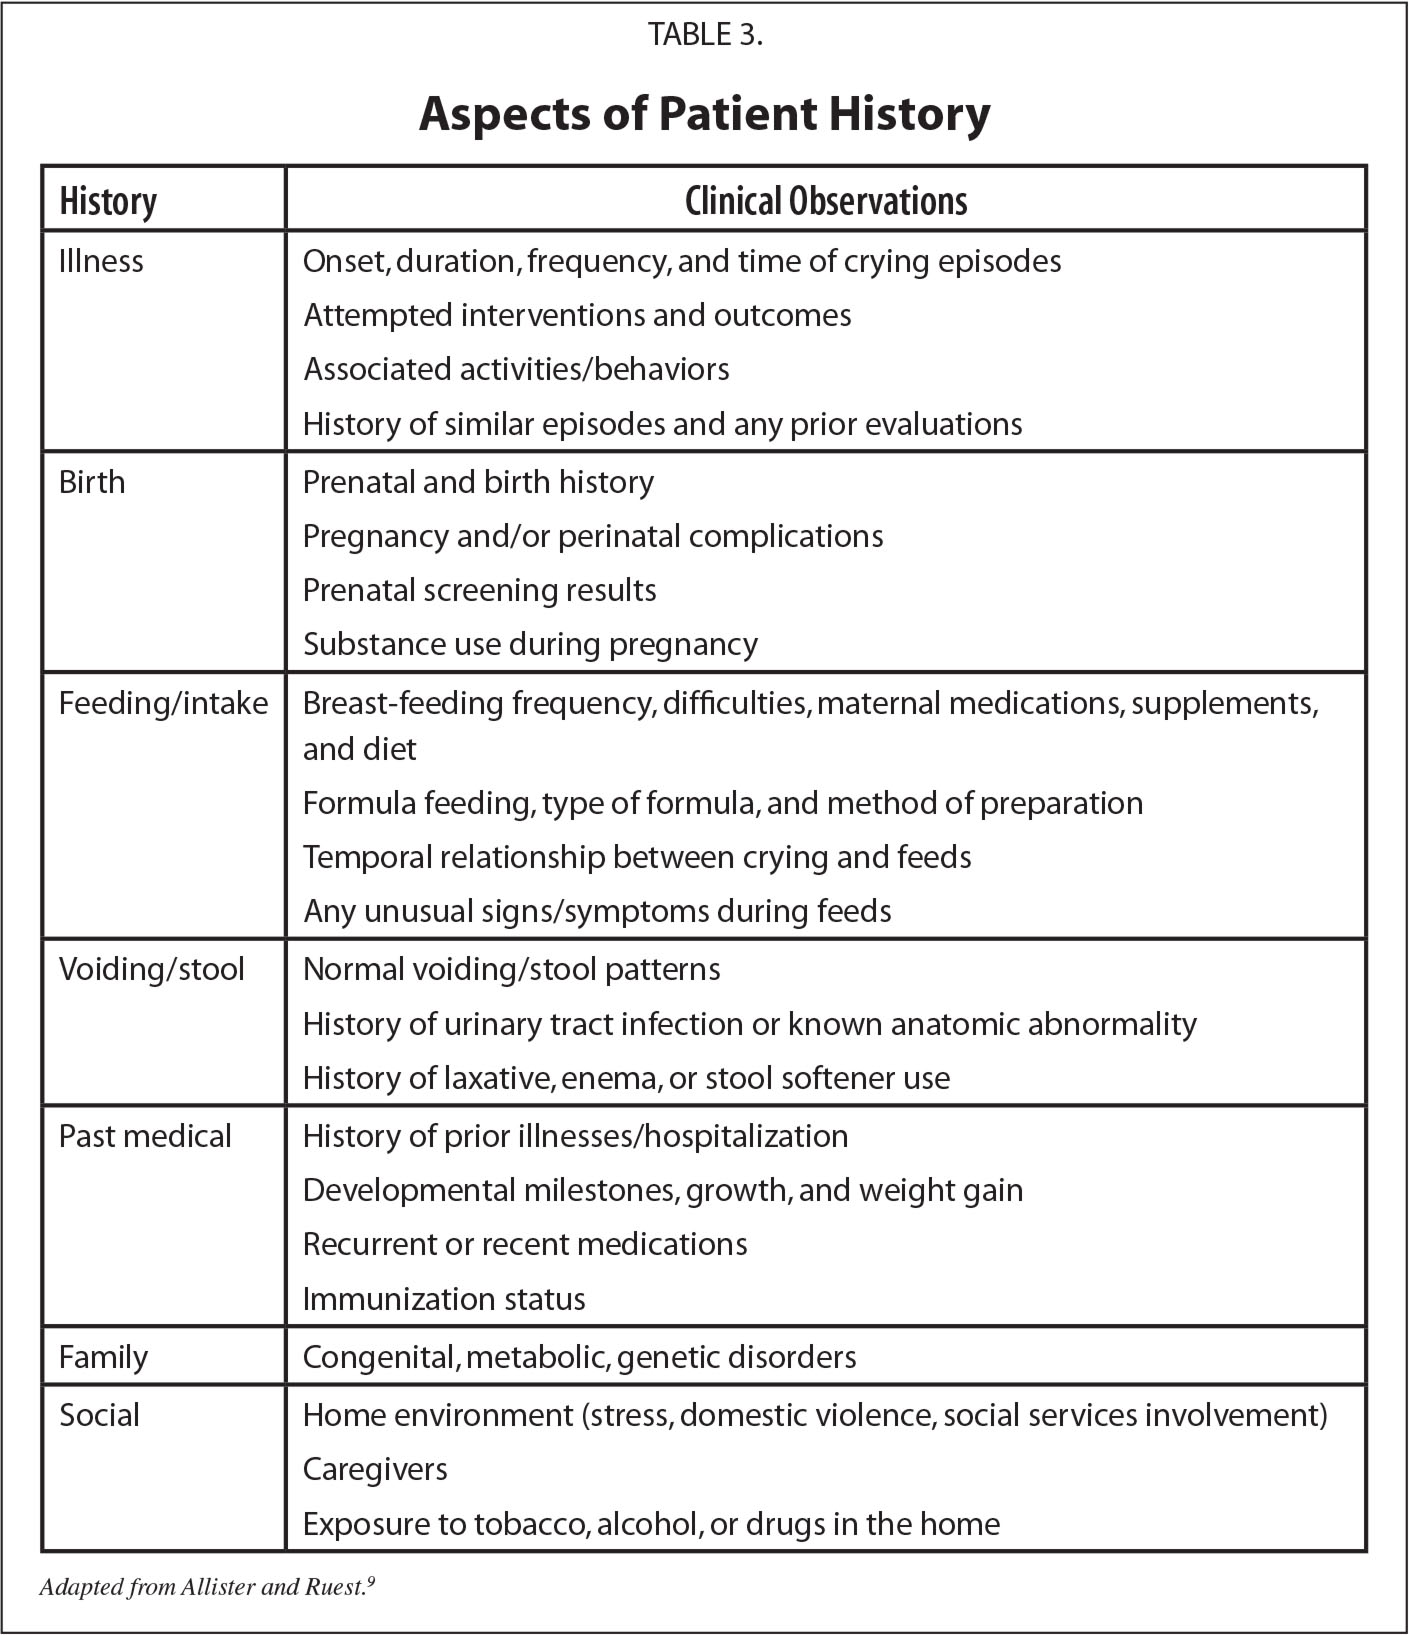 Aspects of Patient History